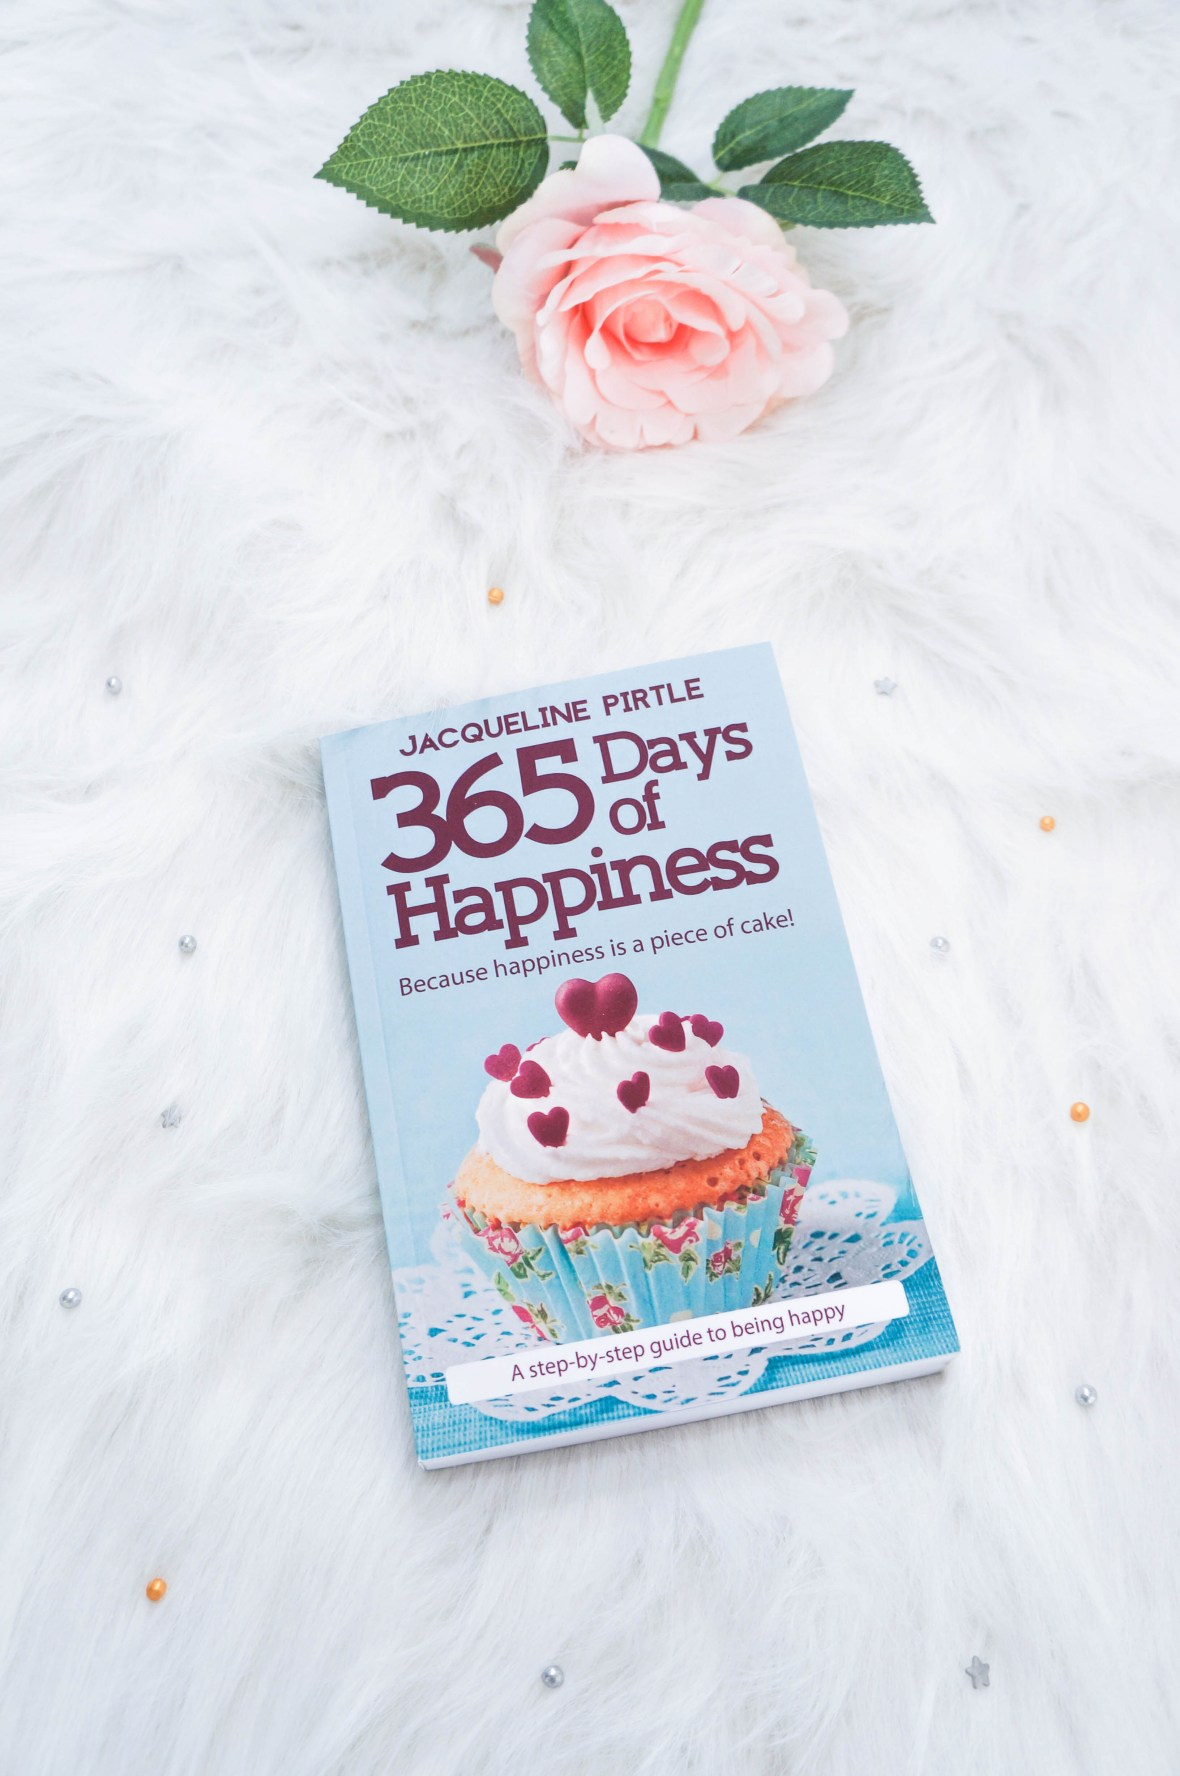 365 days of happiness book review by miss mental. 365 days of happiness written by jacqueine pirtle and gives you practical questions you can use to be more happy in your life and improve your mental health and wellbeing. This book is motivating, exciting and written with love #happiness #book